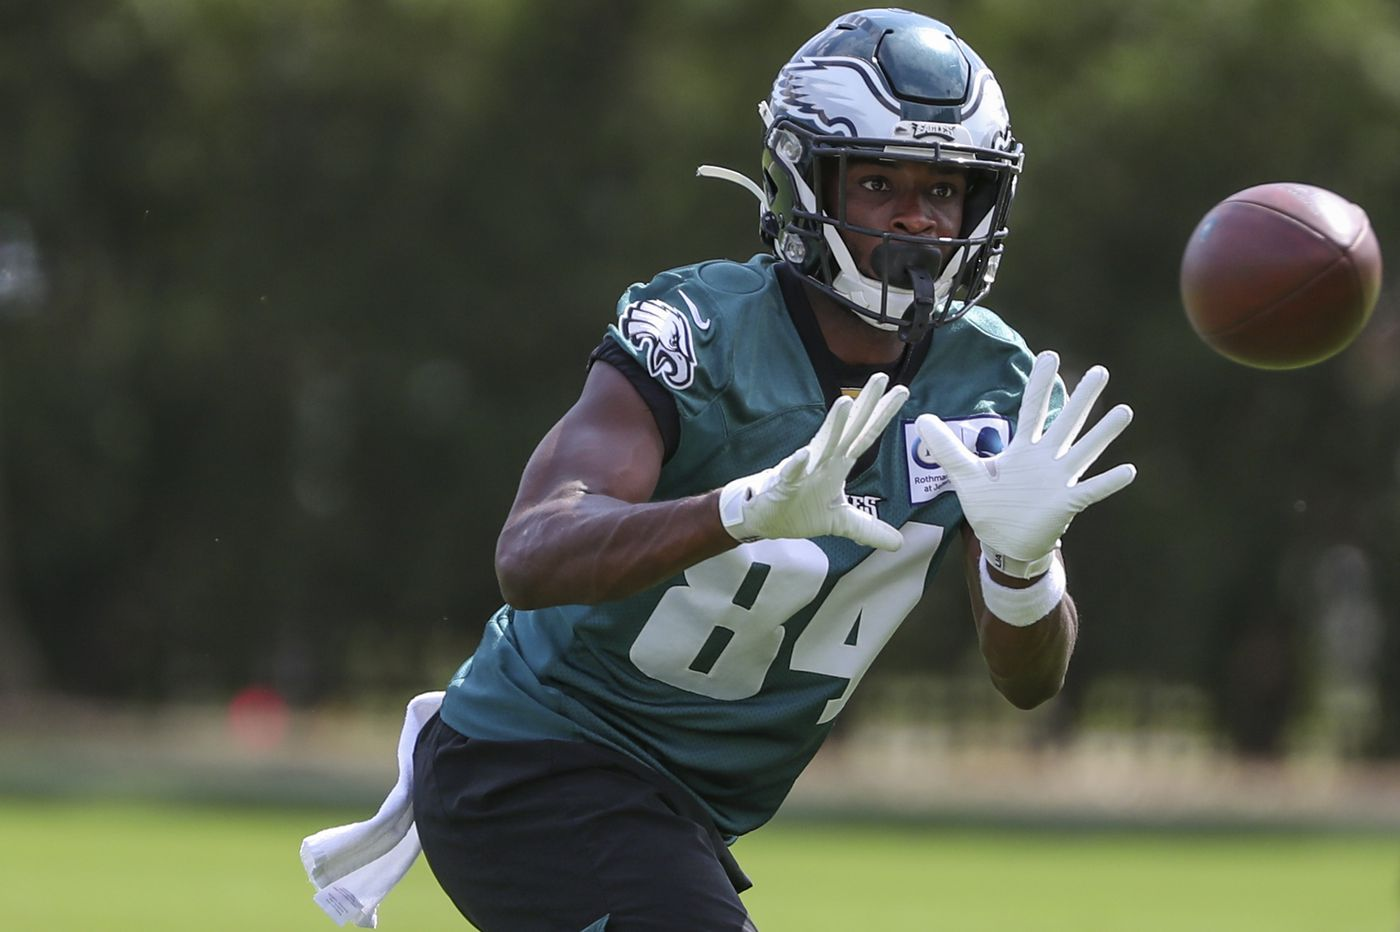 Eagles promote wide receiver Greg Ward, place offensive tackle Jordan Mailata on injured reserve